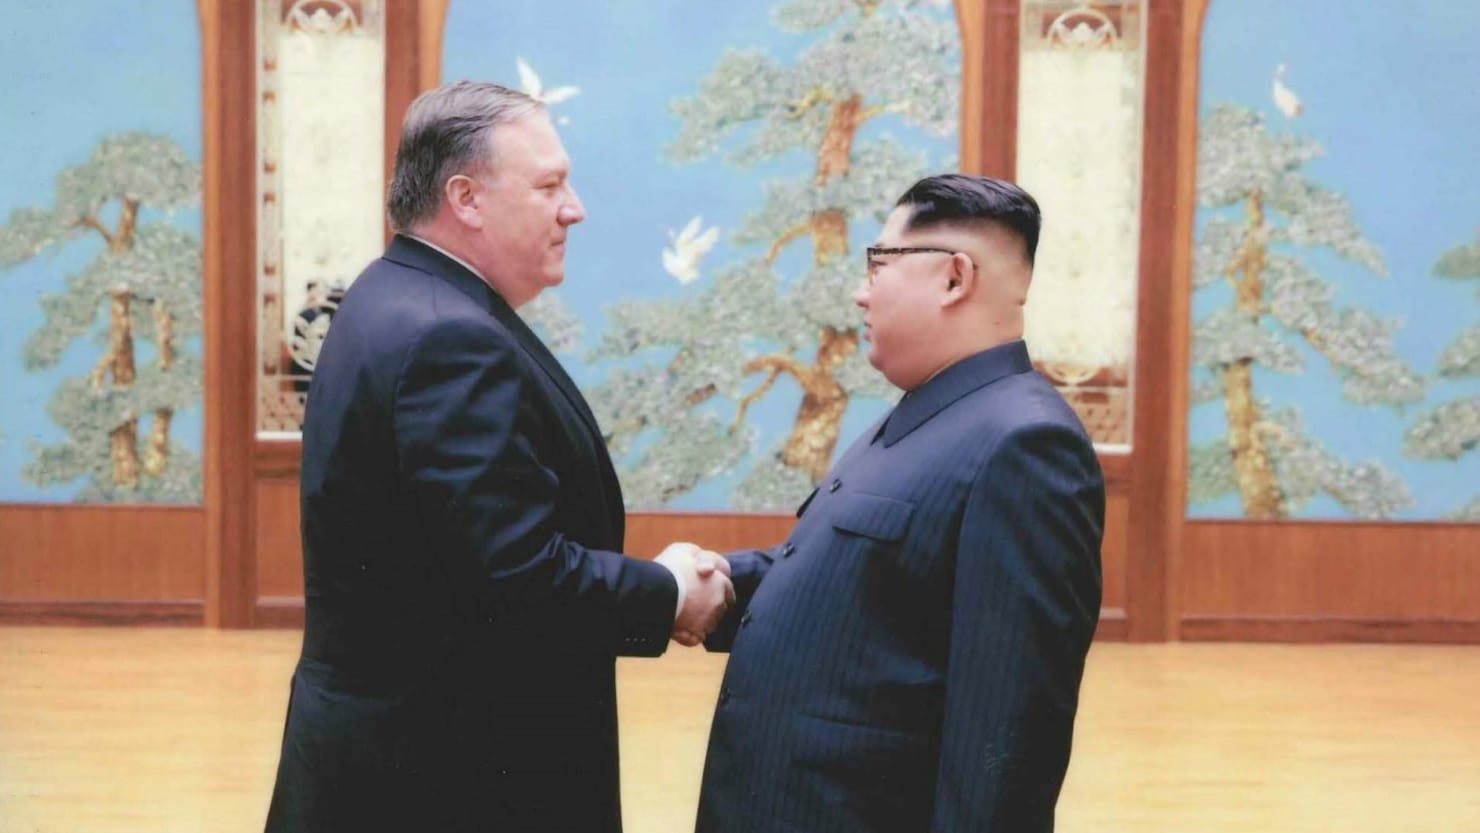 Pompeo: Kim Jong Un Is Breaking His Nuke Agreement With Trump